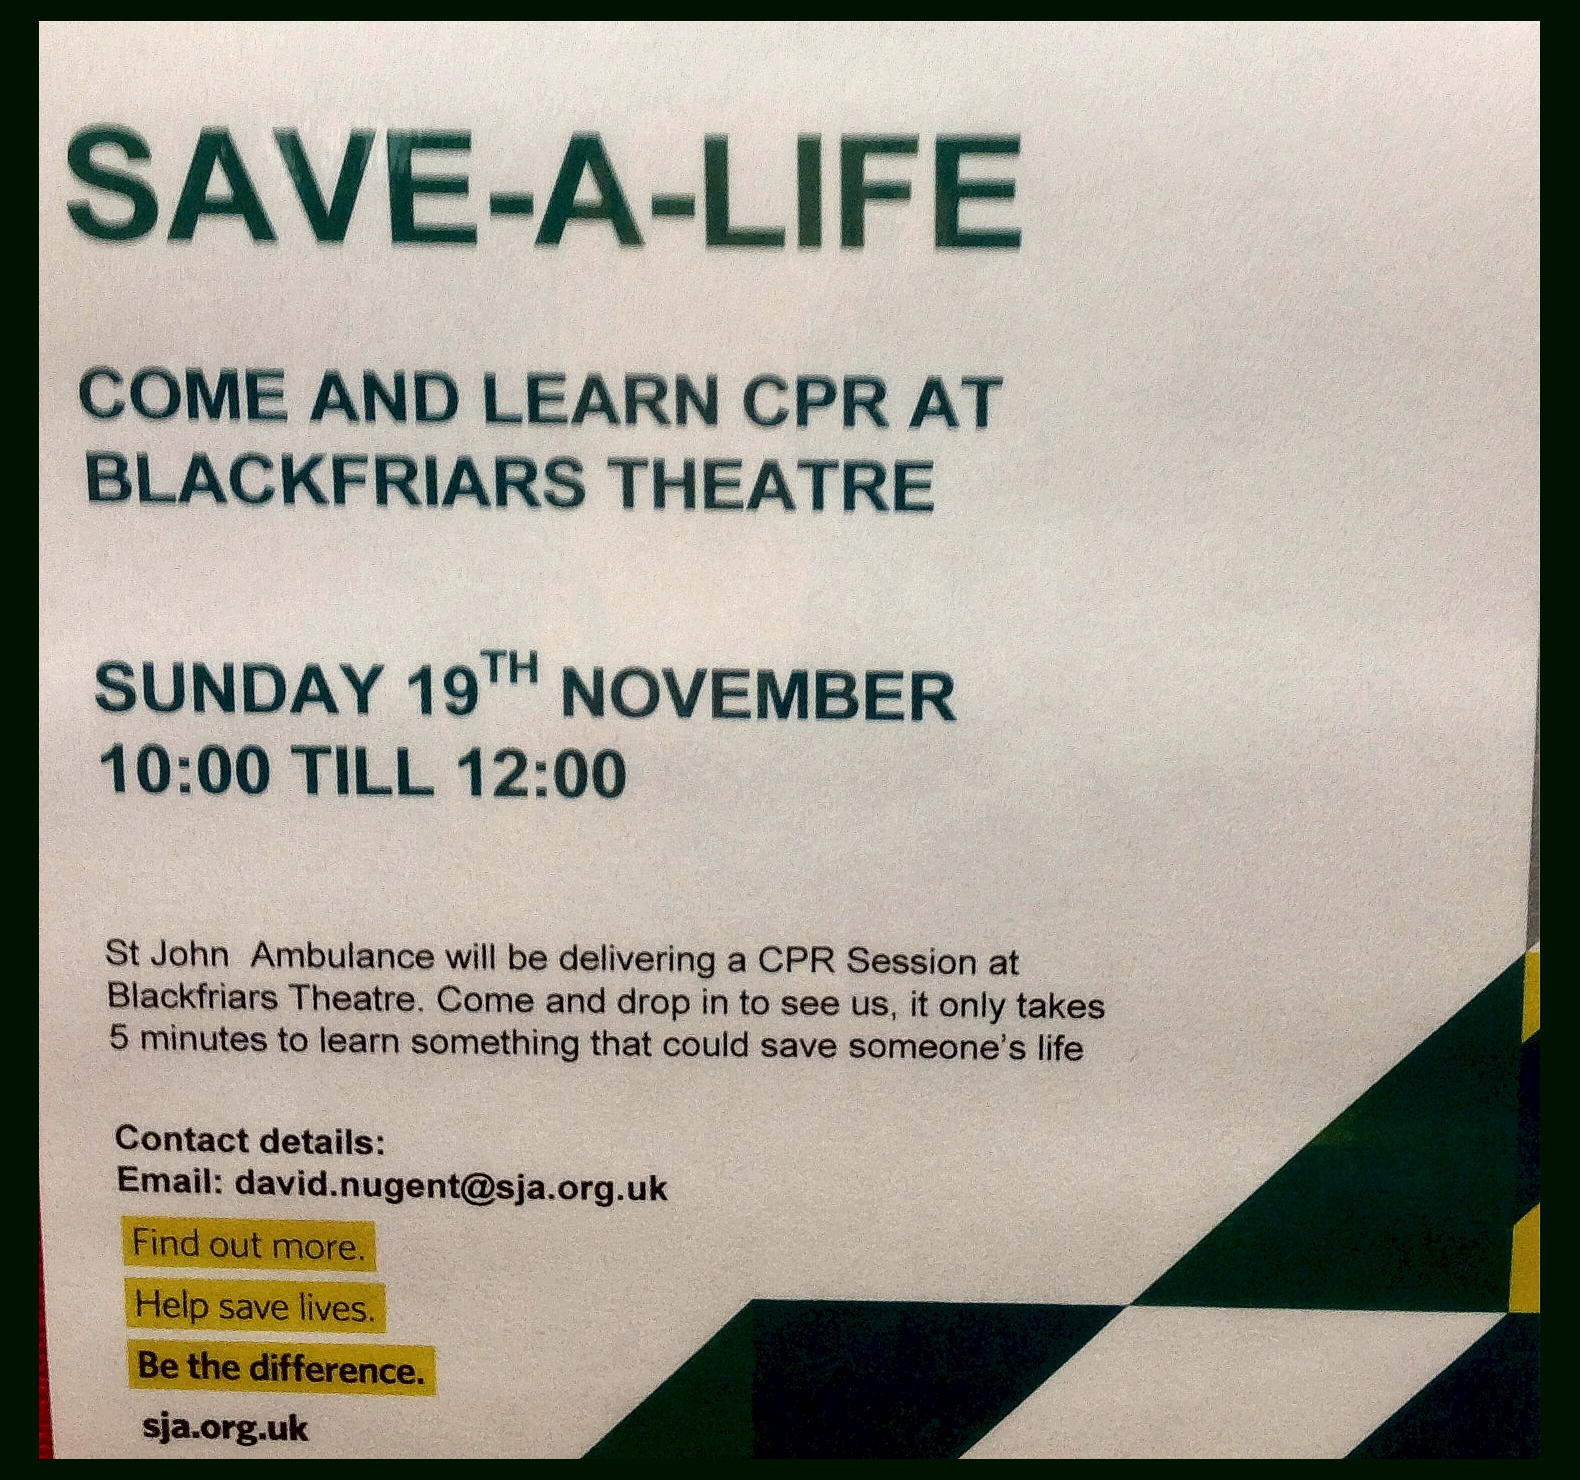 SAVE-A-LIFE Sunday 19th November